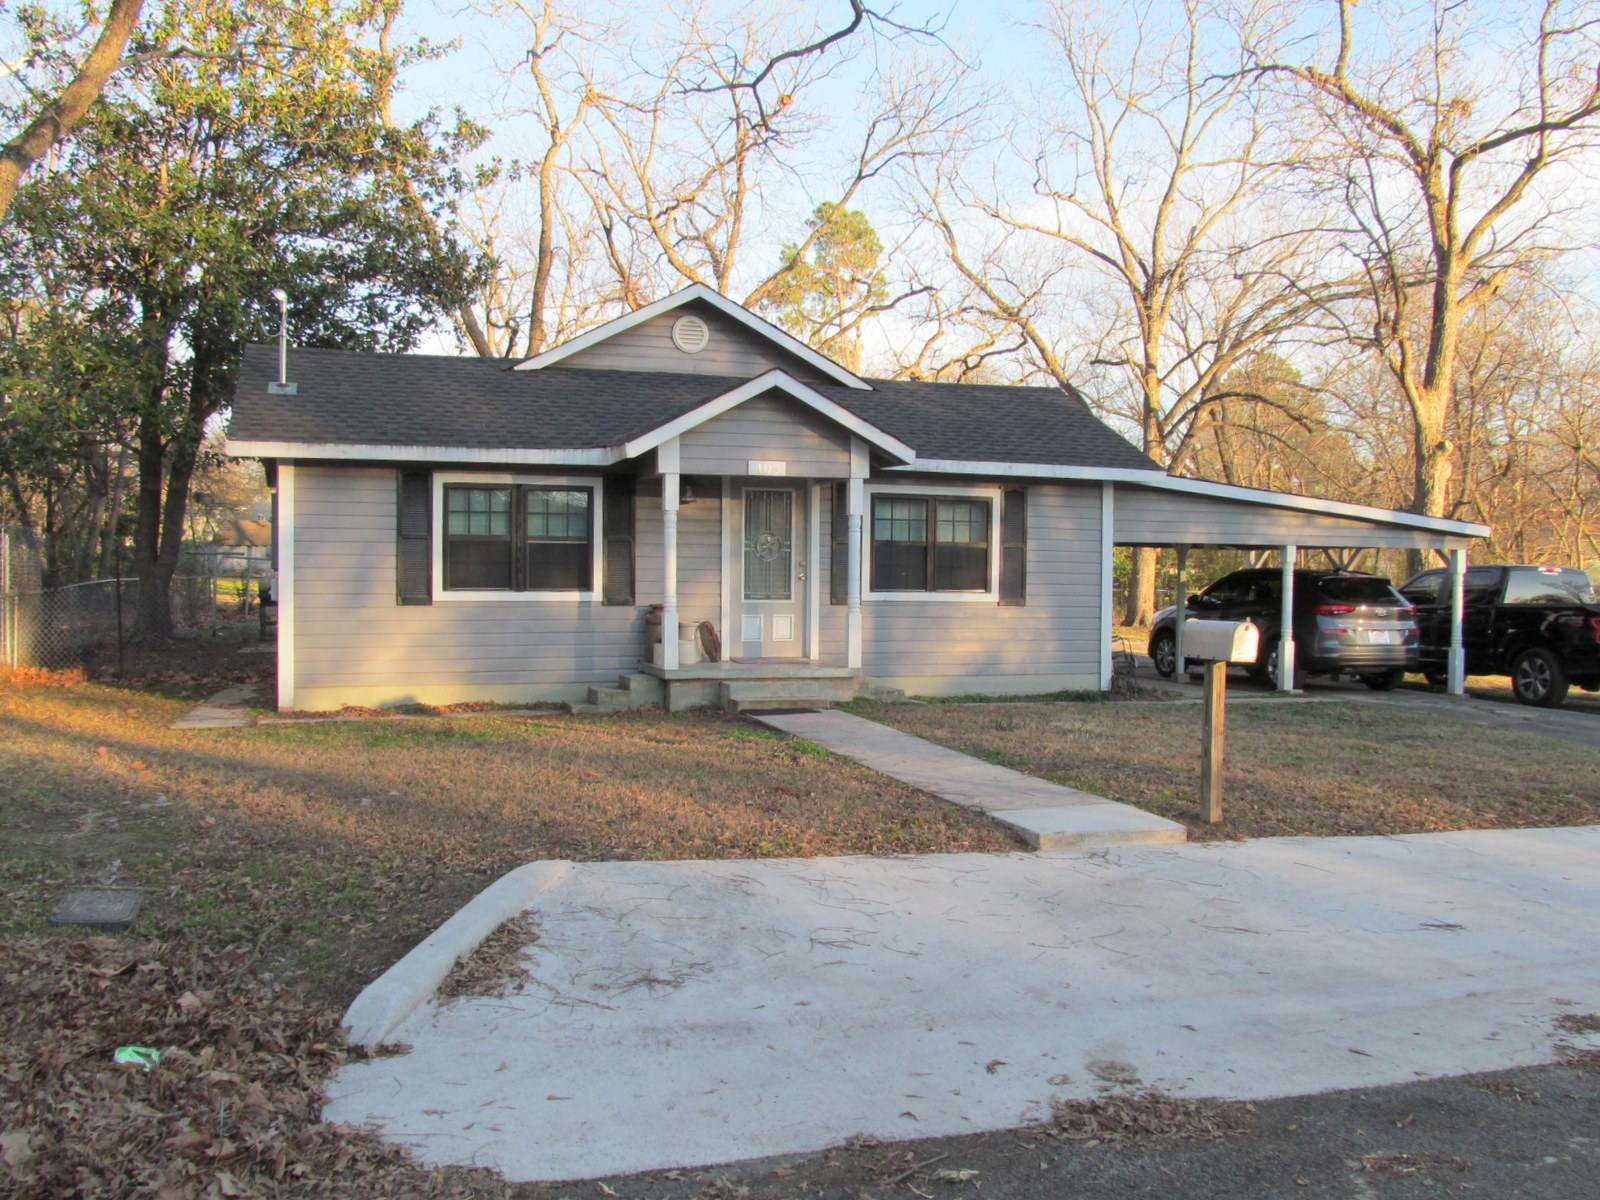 WINNSBORO WOOD COUNTY TEXAS REMODELED HOME IN TOWN FOR SALE